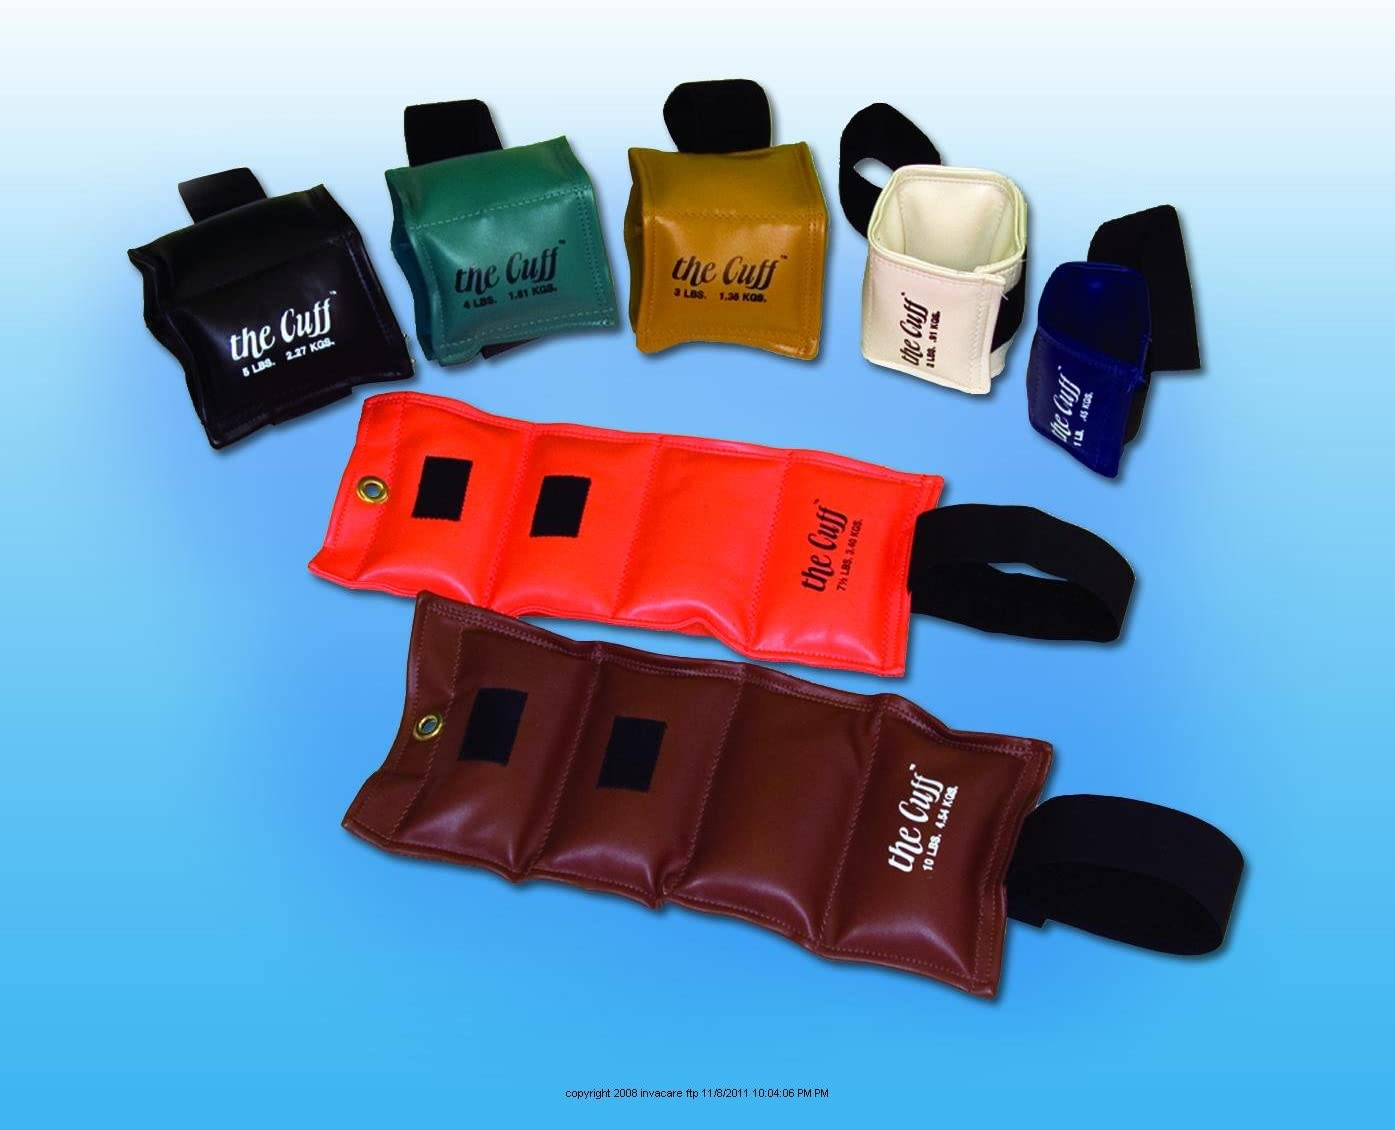 The Cuff Wrist Ankle Weights, Wrist Ankle Weight 3Lb, 1 EACH, 1 EACH